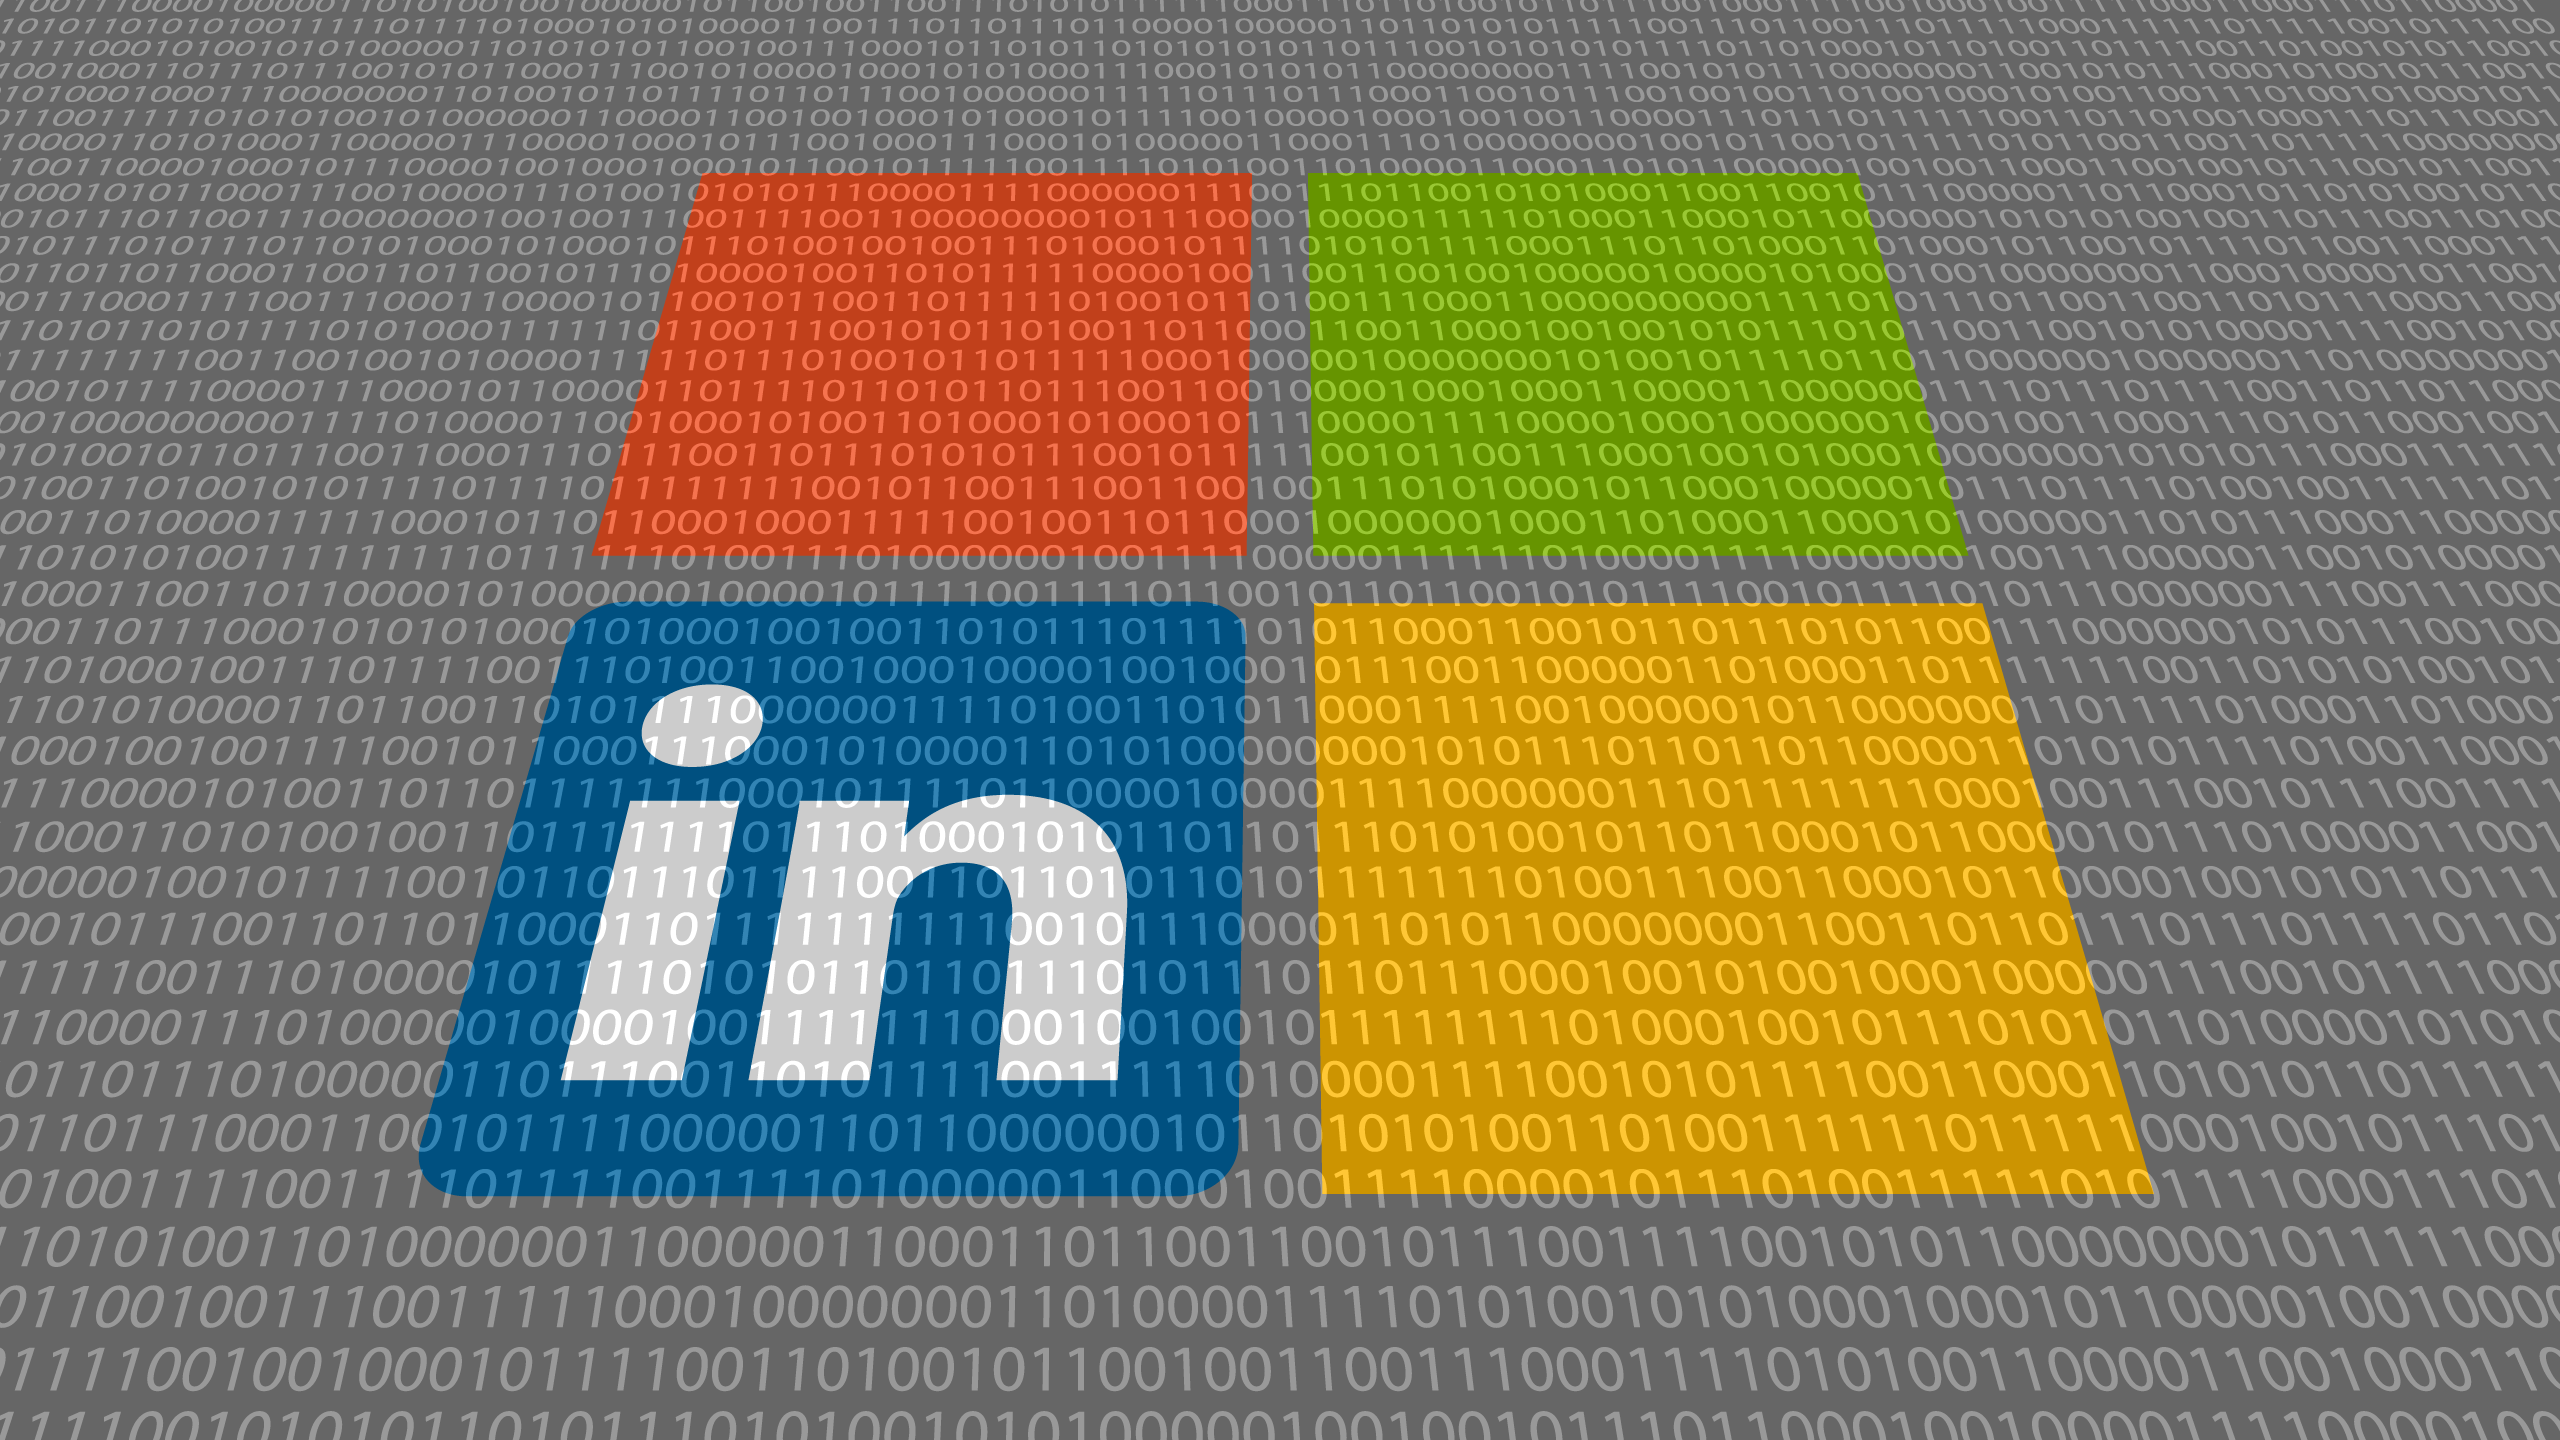 Microsoft rolls out LinkedIn integrations in Outlook com | TechCrunch